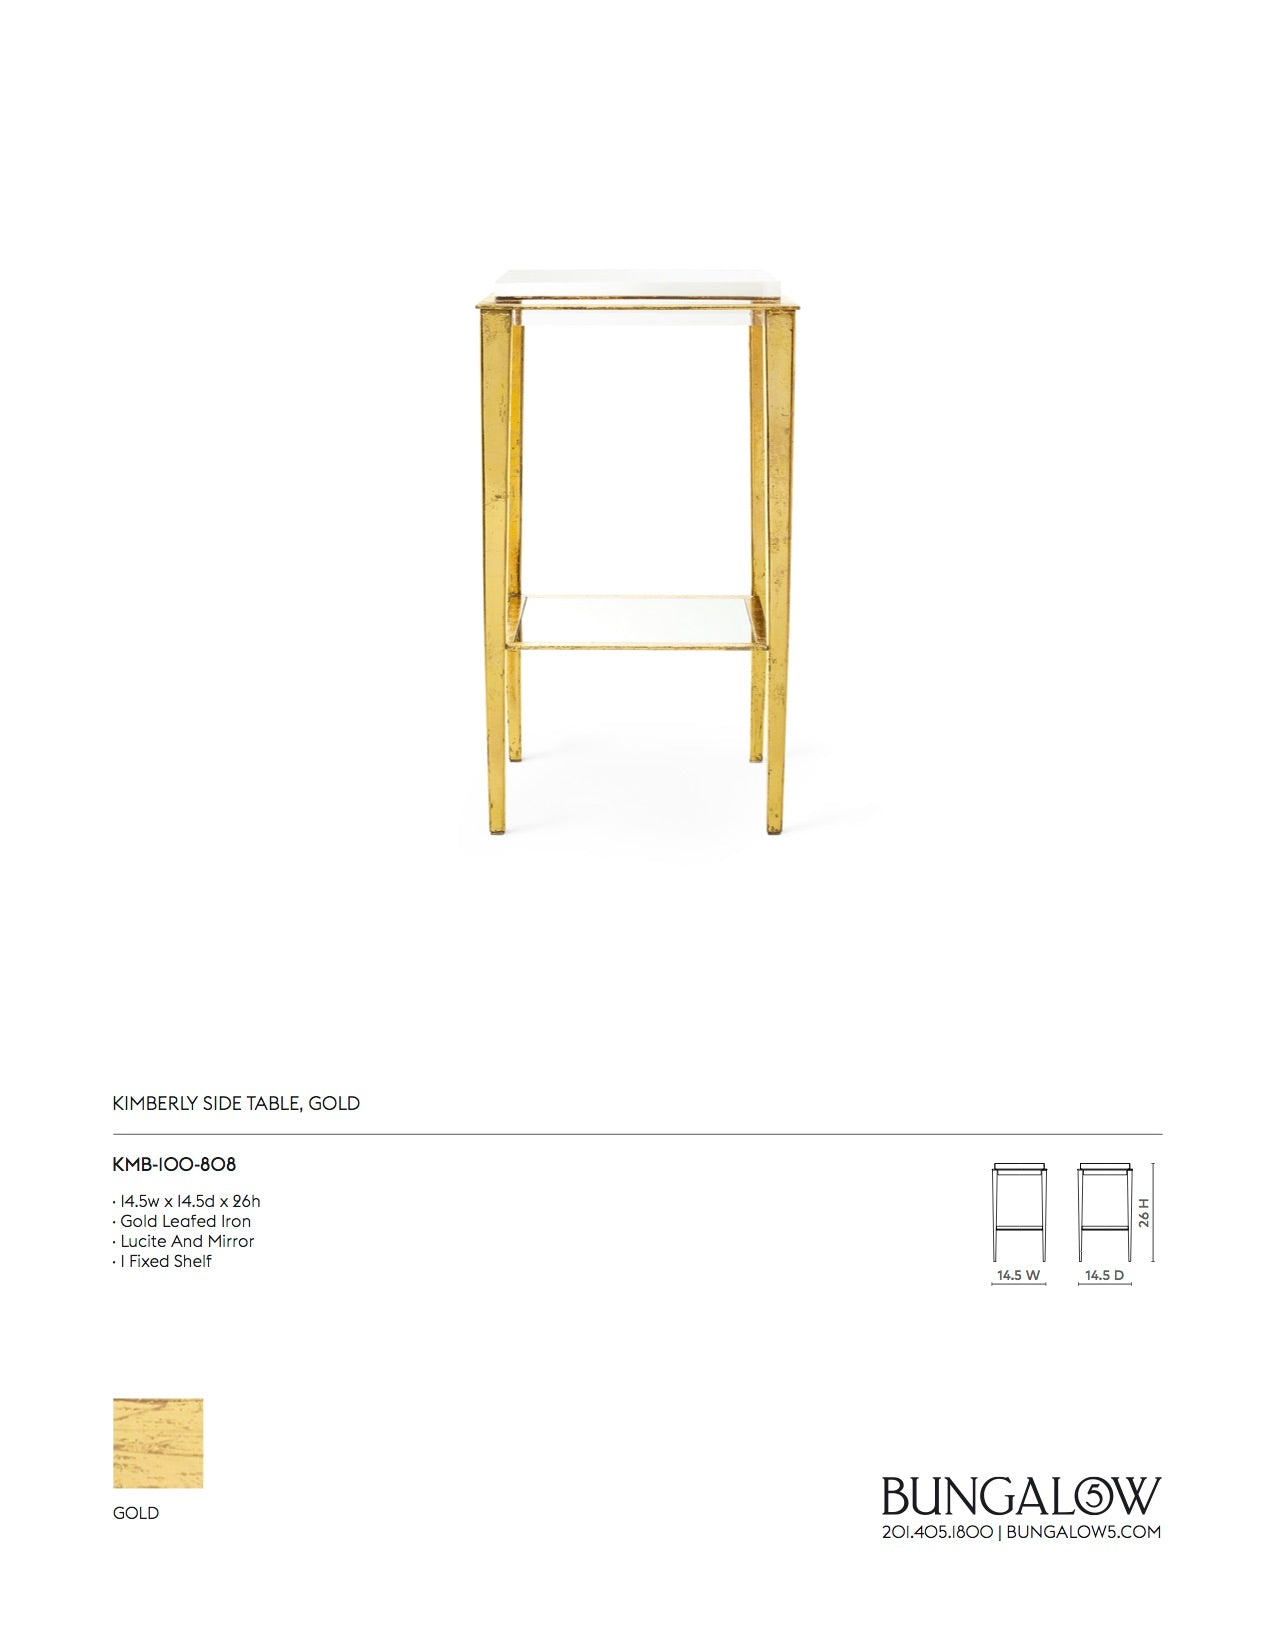 Bungalow 5 Kimberly Side Table Tearsheet